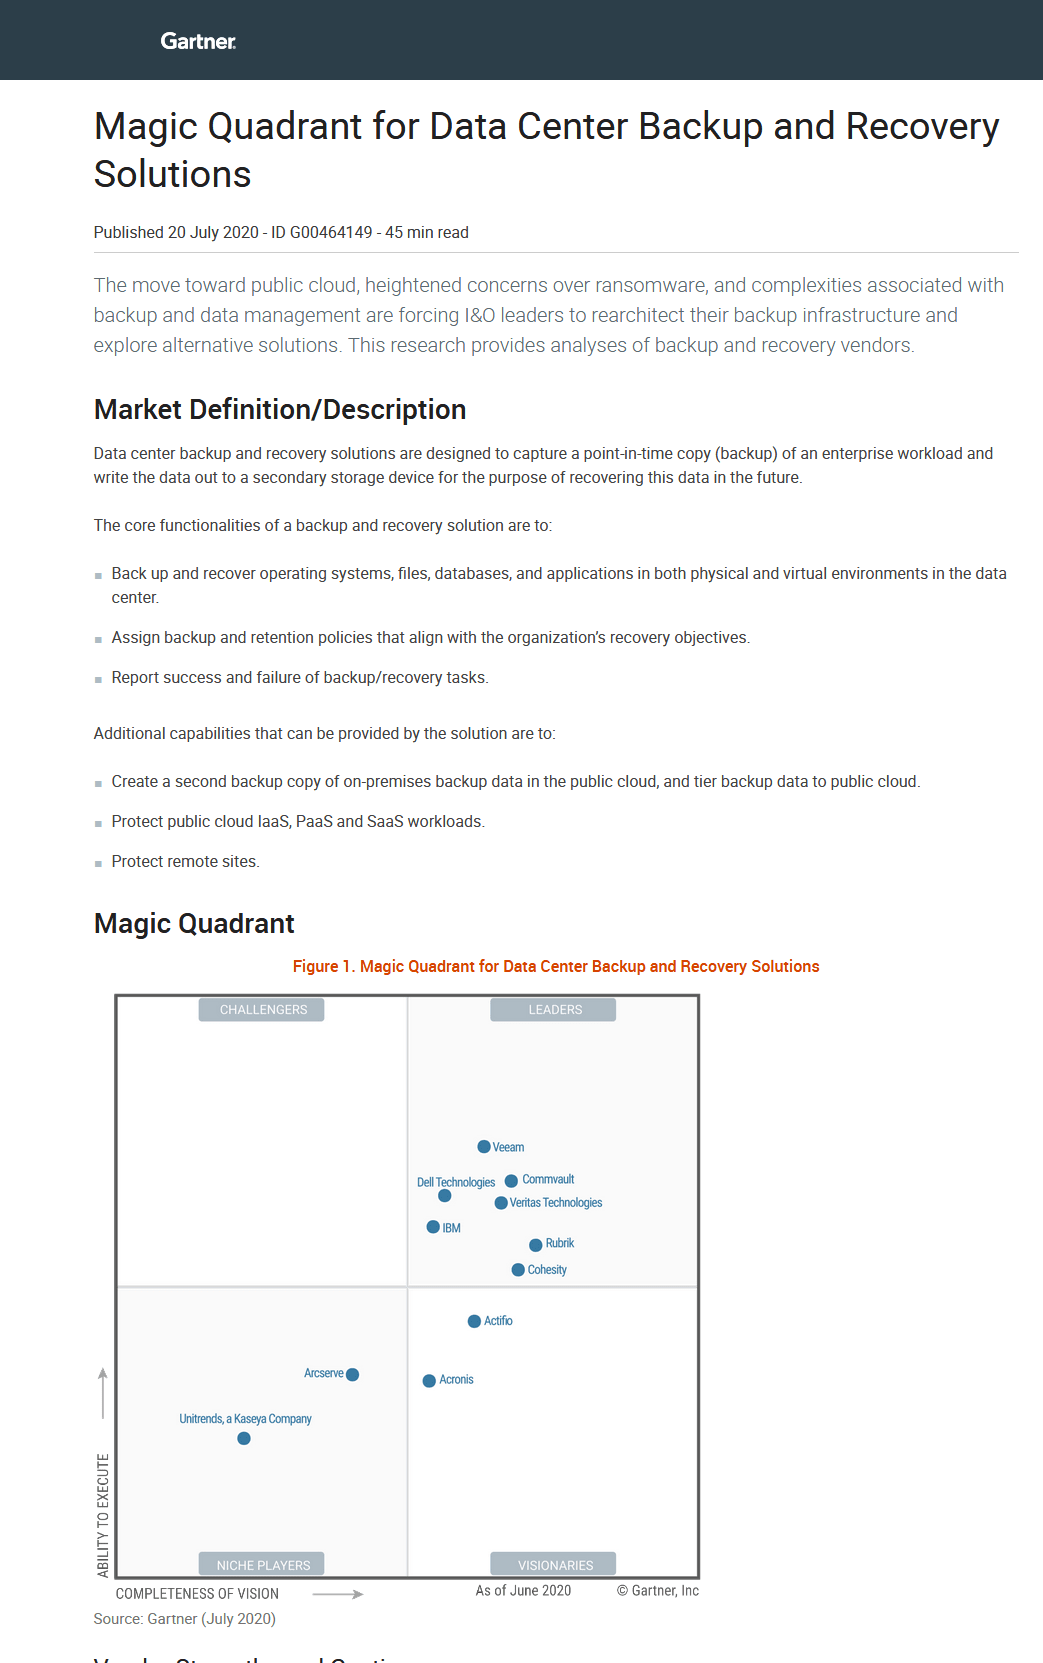 Magic Quadrant for Data Center Backup and Recovery Solutions -TechProspect Magic Quadrant for Data Center Backup and Recovery Solutions -TechProspect